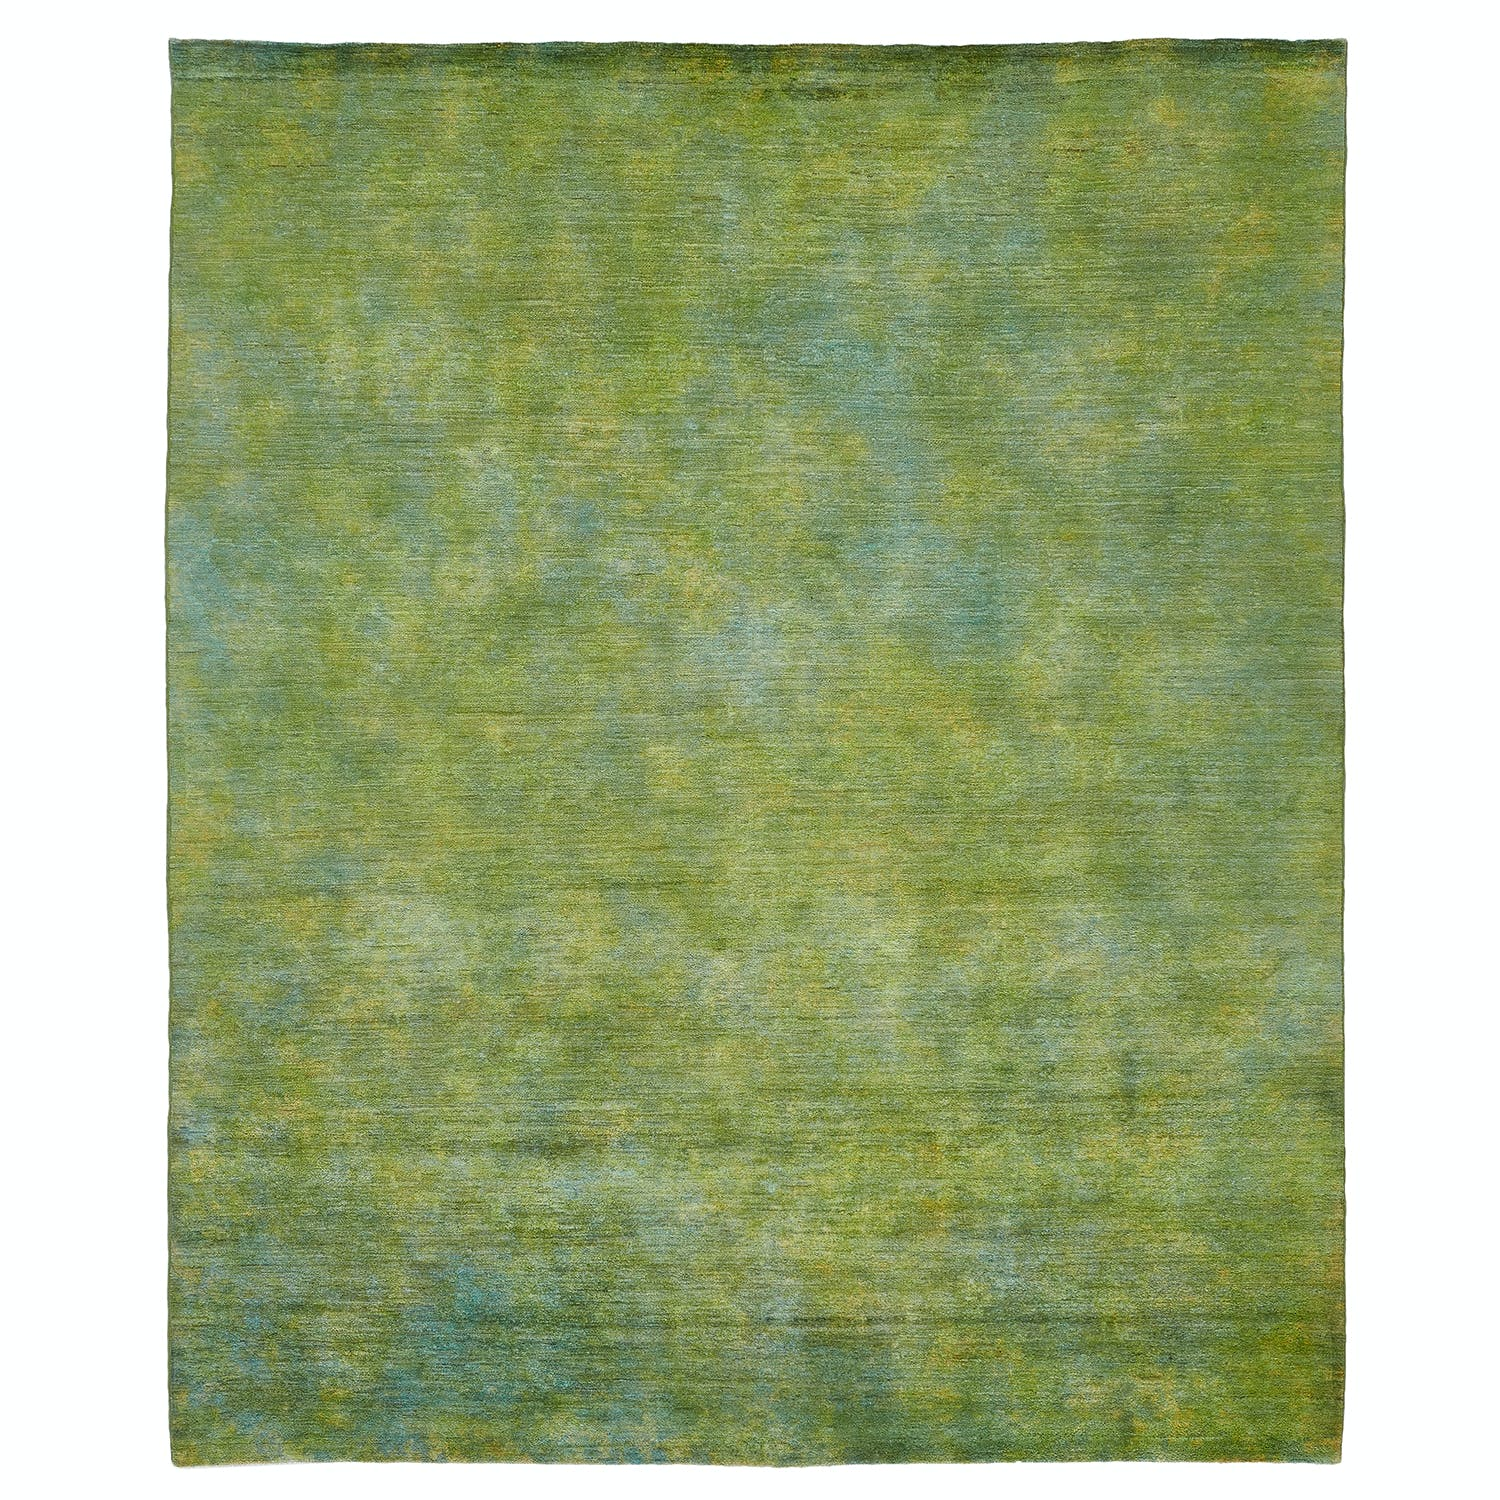 Product Image - Color Reform Rug - 8'x9'9""